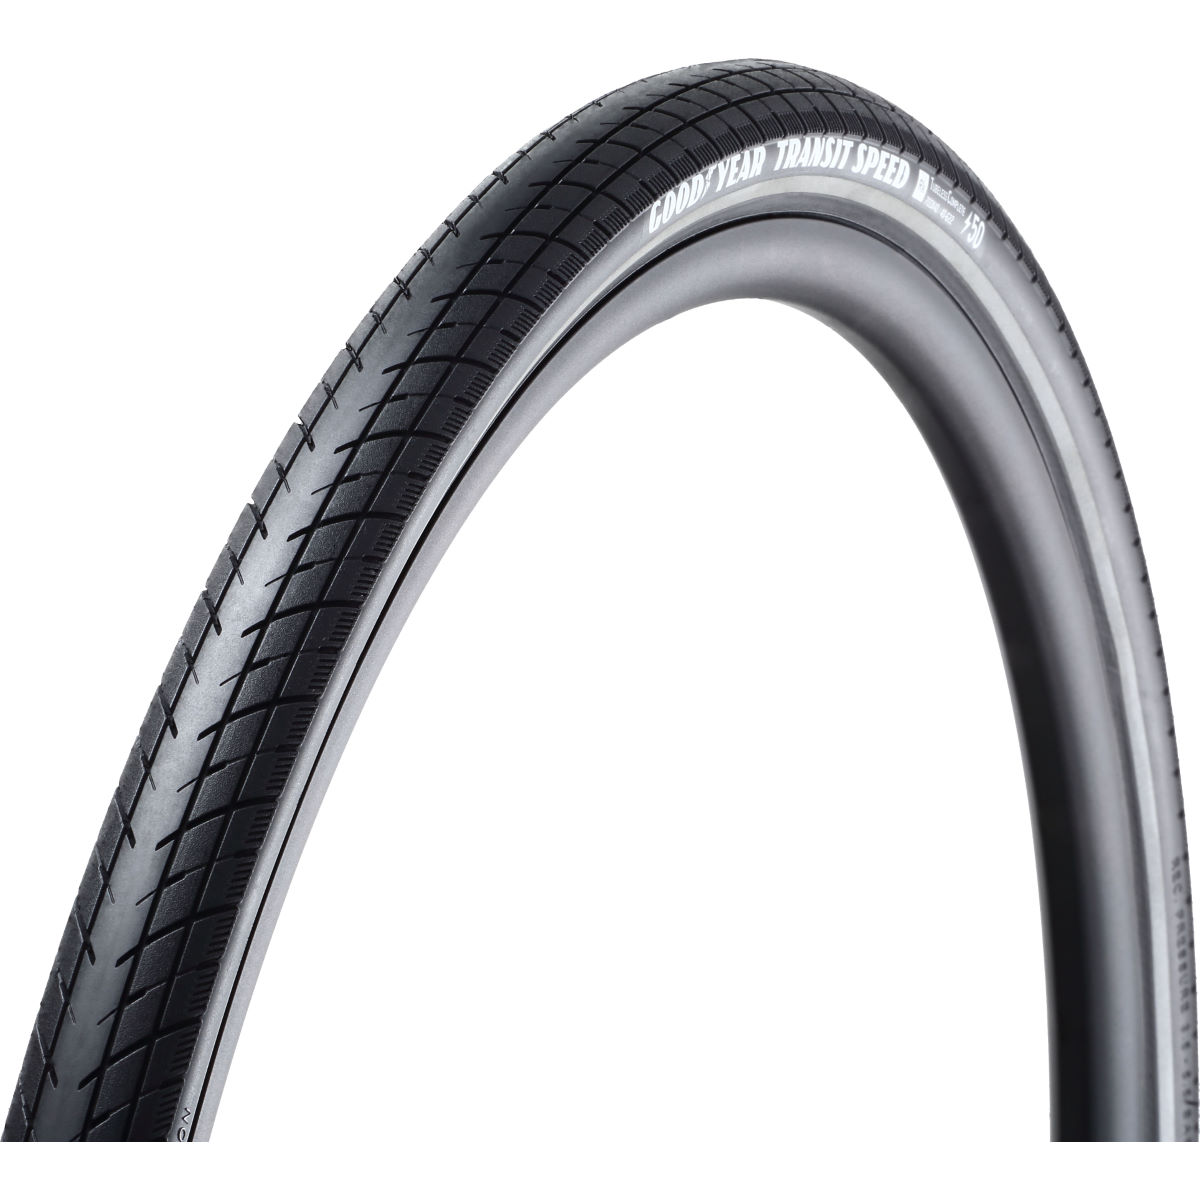 Goodyear Goodyear Transit Speed Tubeless Road Tyre   Tyres